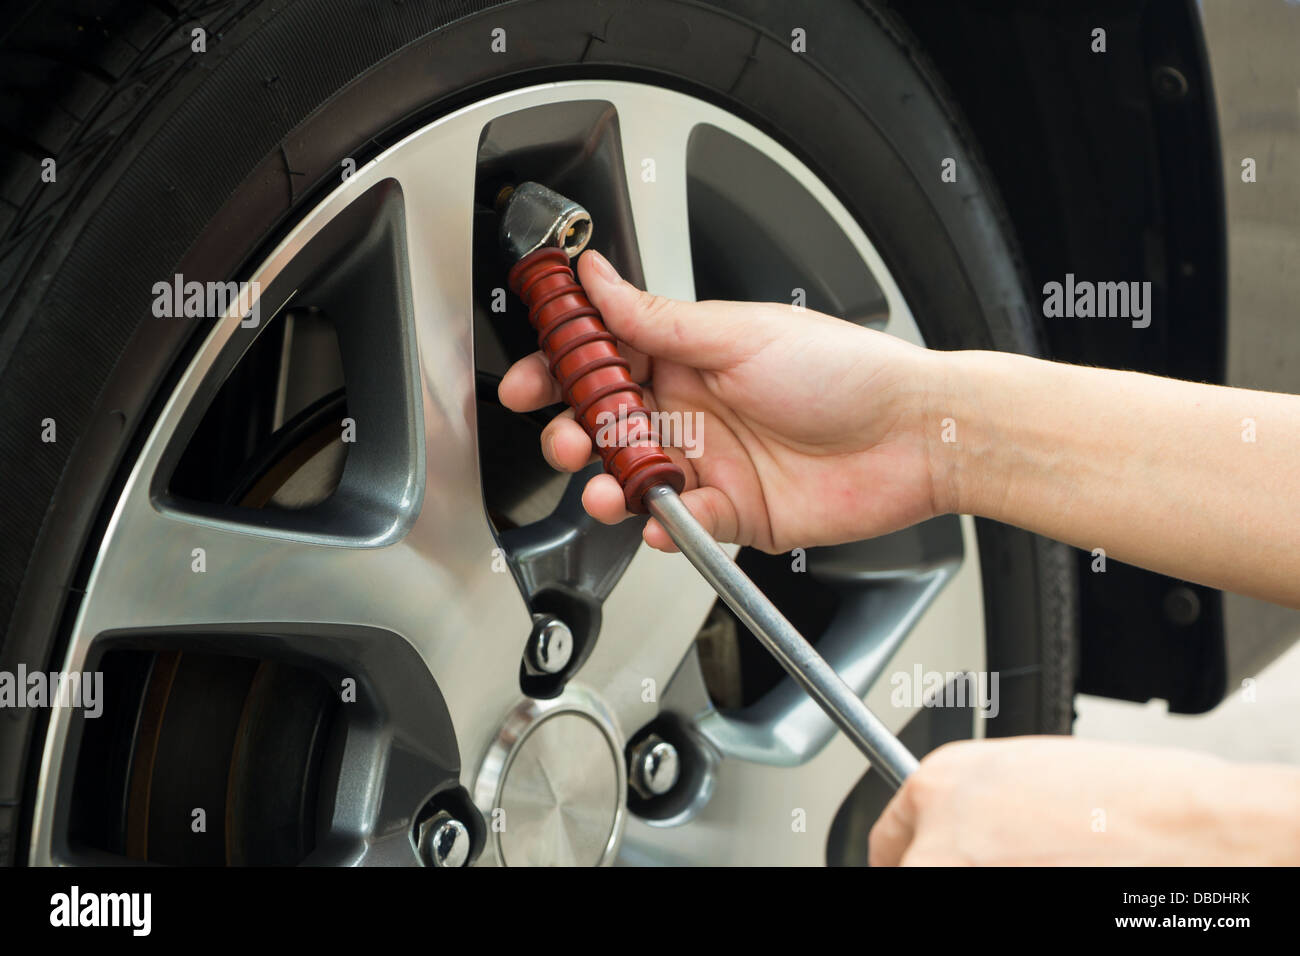 How To Put Air In Car Tires >> Hand Fill Air Into A Car Tire Stock Photo 58691687 Alamy